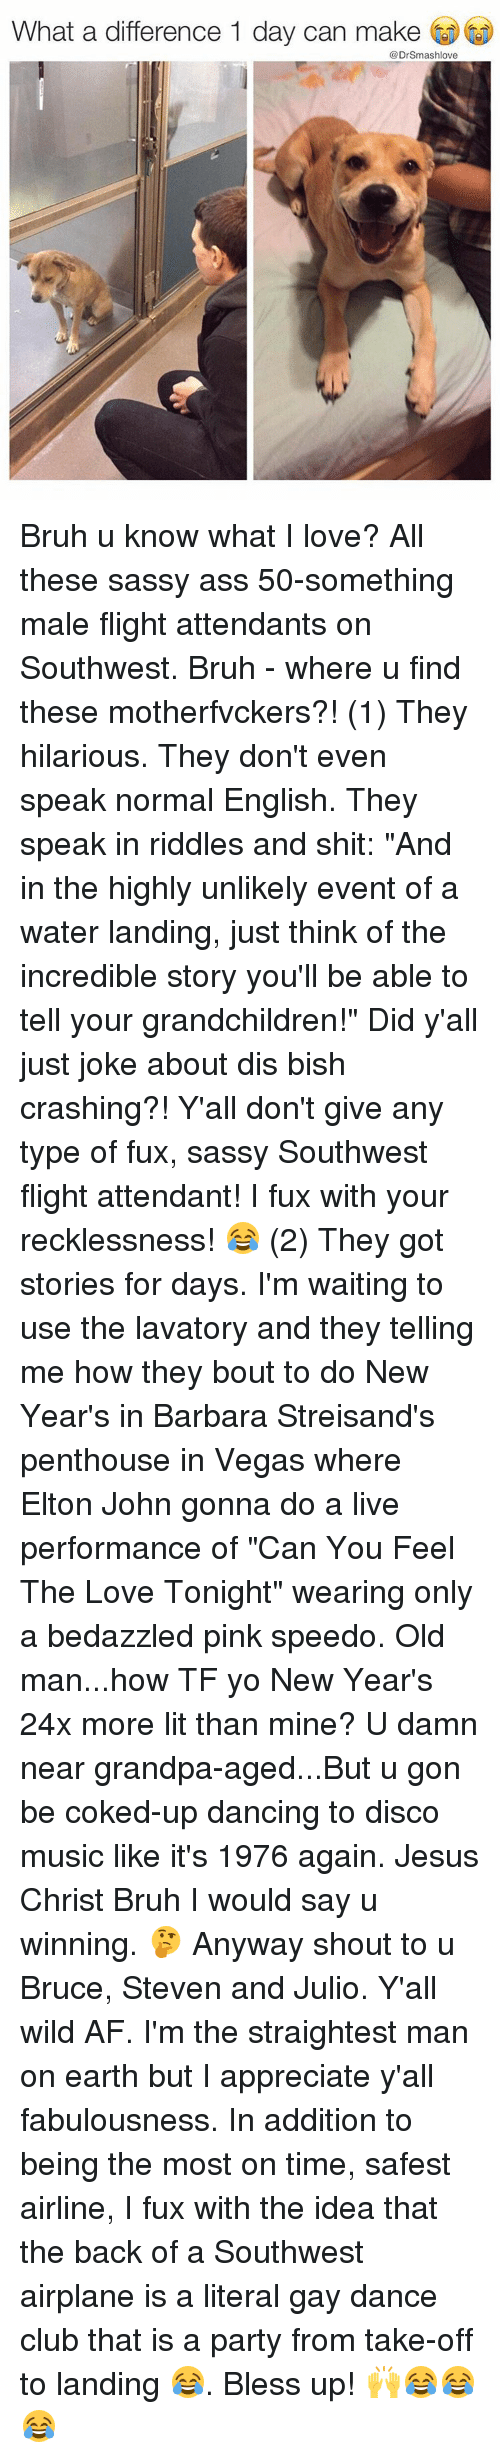 """penthouse: What a difference 1 day can make  @Dr Smashlove Bruh u know what I love? All these sassy ass 50-something male flight attendants on Southwest. Bruh - where u find these motherfvckers?! (1) They hilarious. They don't even speak normal English. They speak in riddles and shit: """"And in the highly unlikely event of a water landing, just think of the incredible story you'll be able to tell your grandchildren!"""" Did y'all just joke about dis bish crashing?! Y'all don't give any type of fux, sassy Southwest flight attendant! I fux with your recklessness! 😂 (2) They got stories for days. I'm waiting to use the lavatory and they telling me how they bout to do New Year's in Barbara Streisand's penthouse in Vegas where Elton John gonna do a live performance of """"Can You Feel The Love Tonight"""" wearing only a bedazzled pink speedo. Old man...how TF yo New Year's 24x more lit than mine? U damn near grandpa-aged...But u gon be coked-up dancing to disco music like it's 1976 again. Jesus Christ Bruh I would say u winning. 🤔 Anyway shout to u Bruce, Steven and Julio. Y'all wild AF. I'm the straightest man on earth but I appreciate y'all fabulousness. In addition to being the most on time, safest airline, I fux with the idea that the back of a Southwest airplane is a literal gay dance club that is a party from take-off to landing 😂. Bless up! 🙌😂😂😂"""